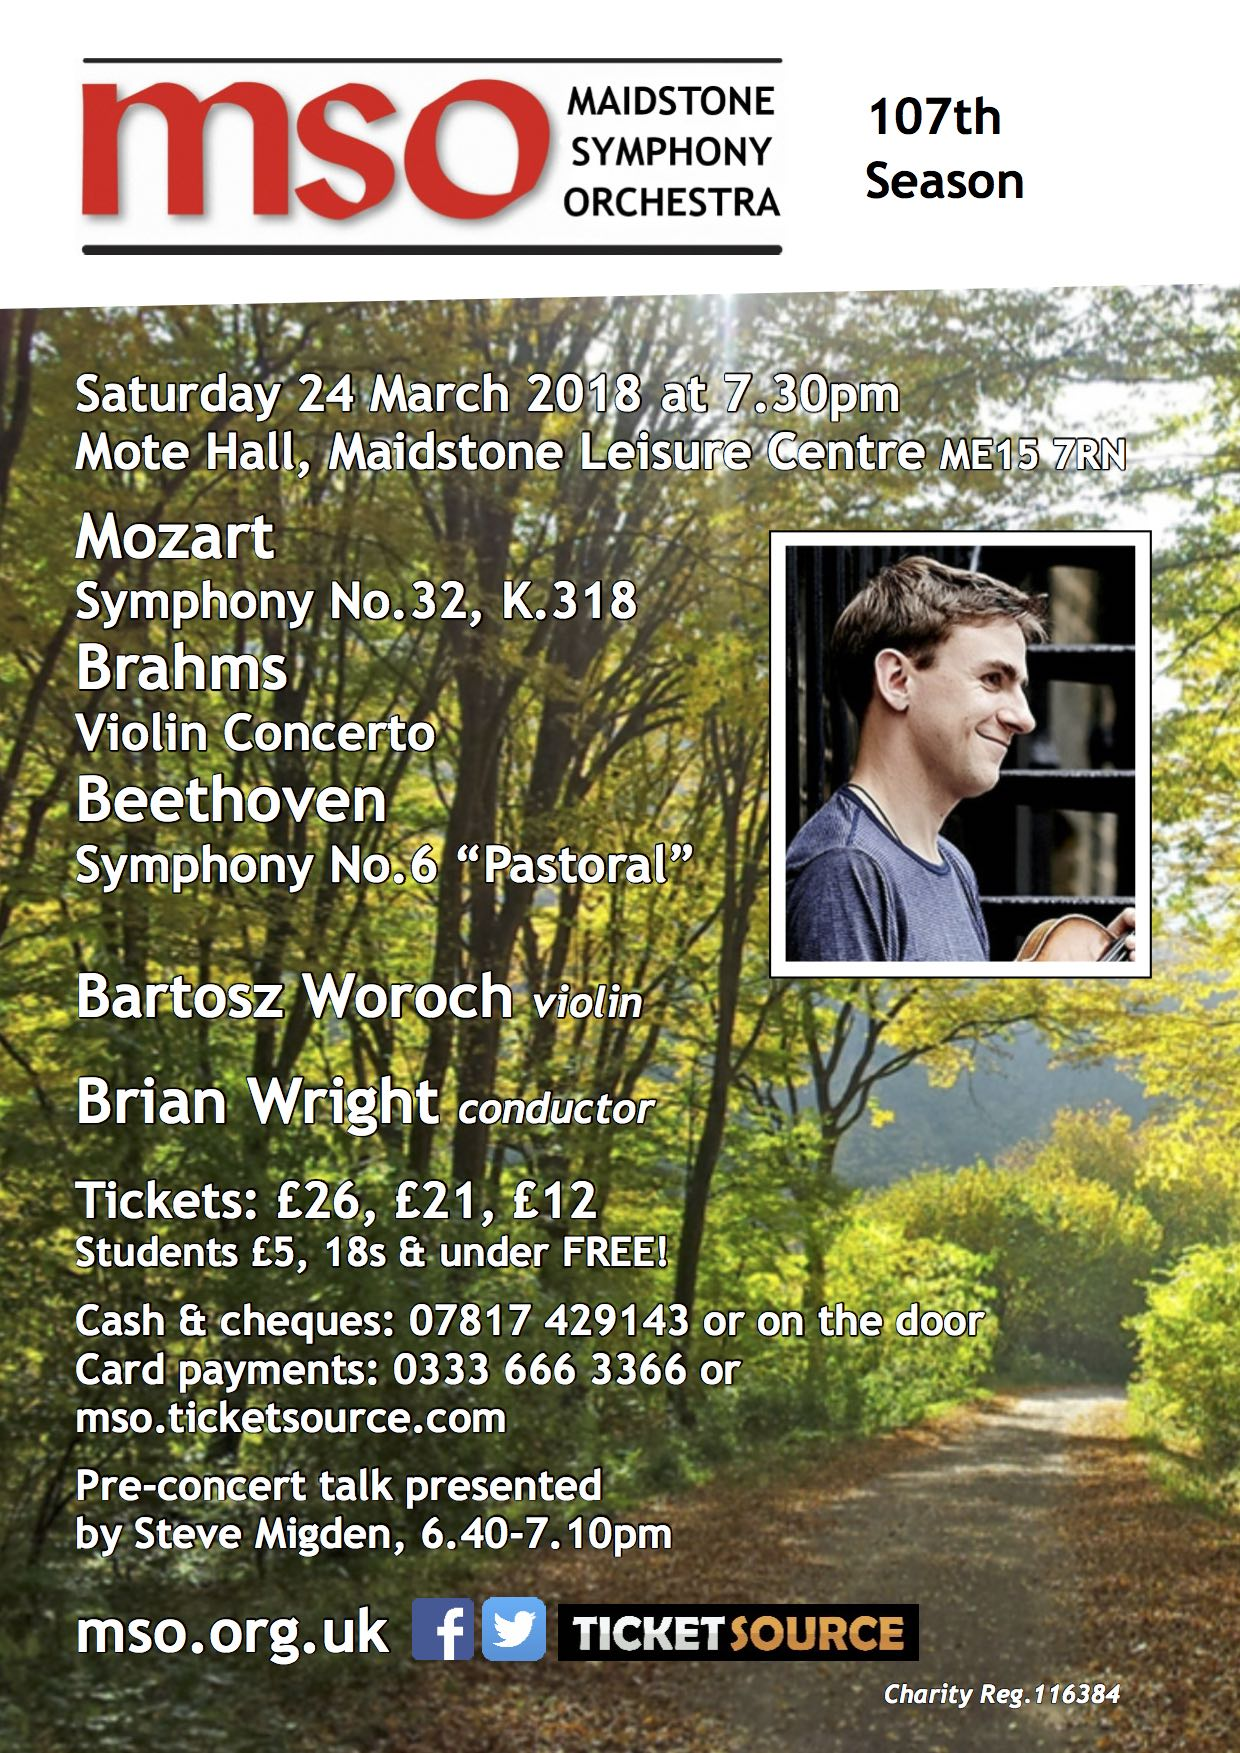 Concert 4: German Masters at Mote Hall event tickets from